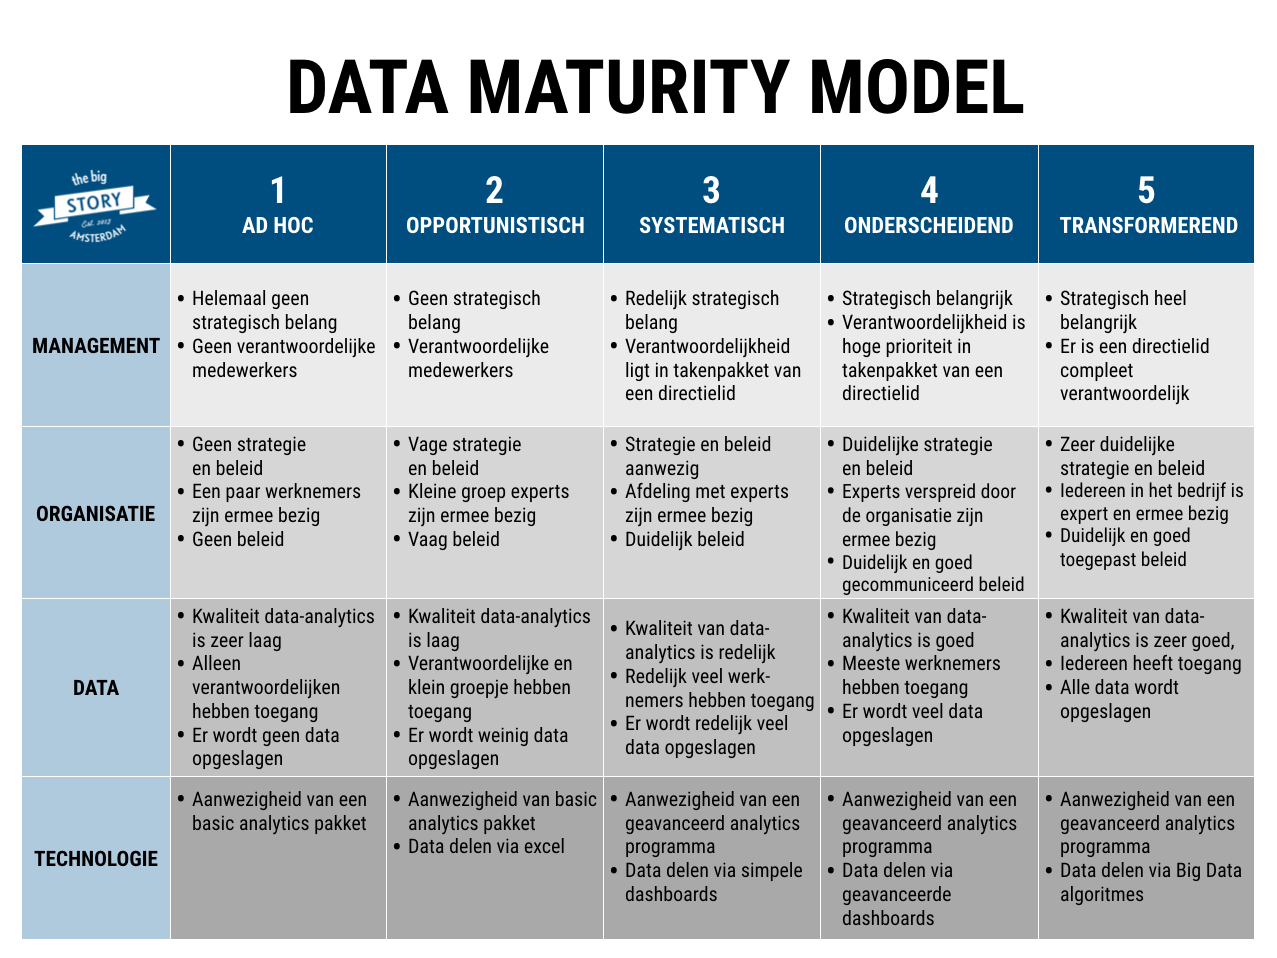 Data Maturity Model van The Big Story geeft inzicht in data gedreven werkwijze